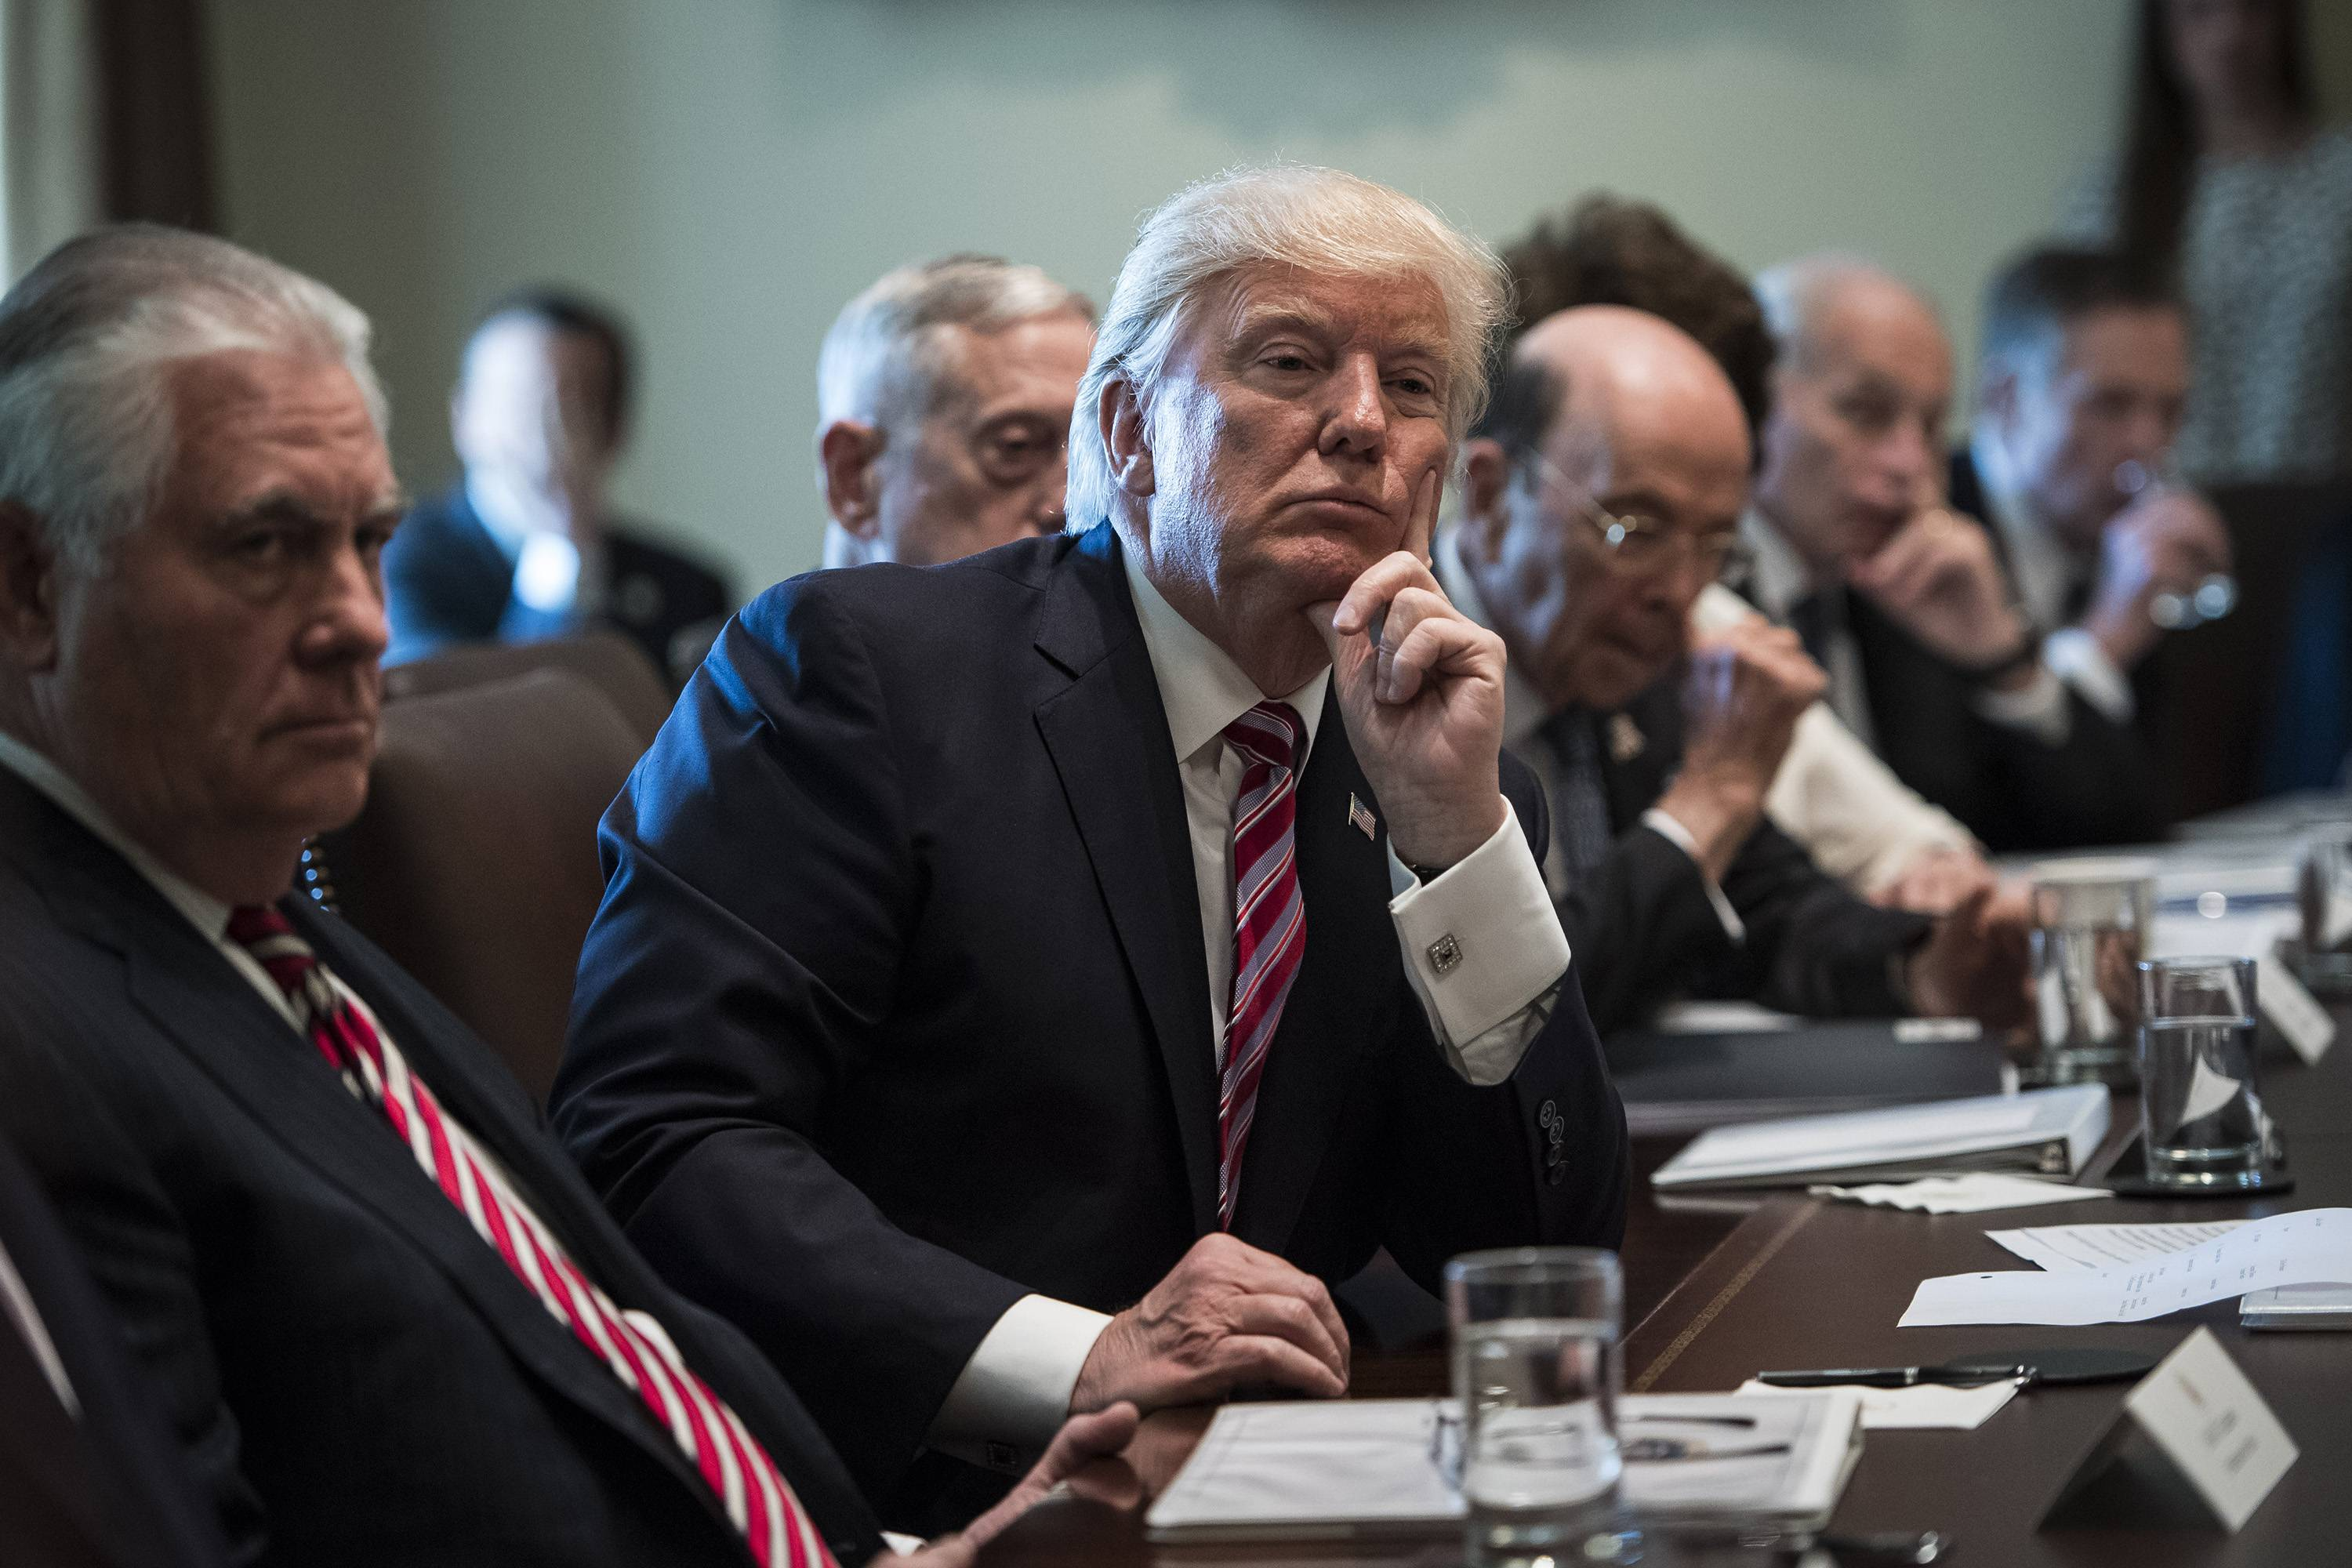 President Donald Trump listens during a Cabinet meeting in the White House on Monday.